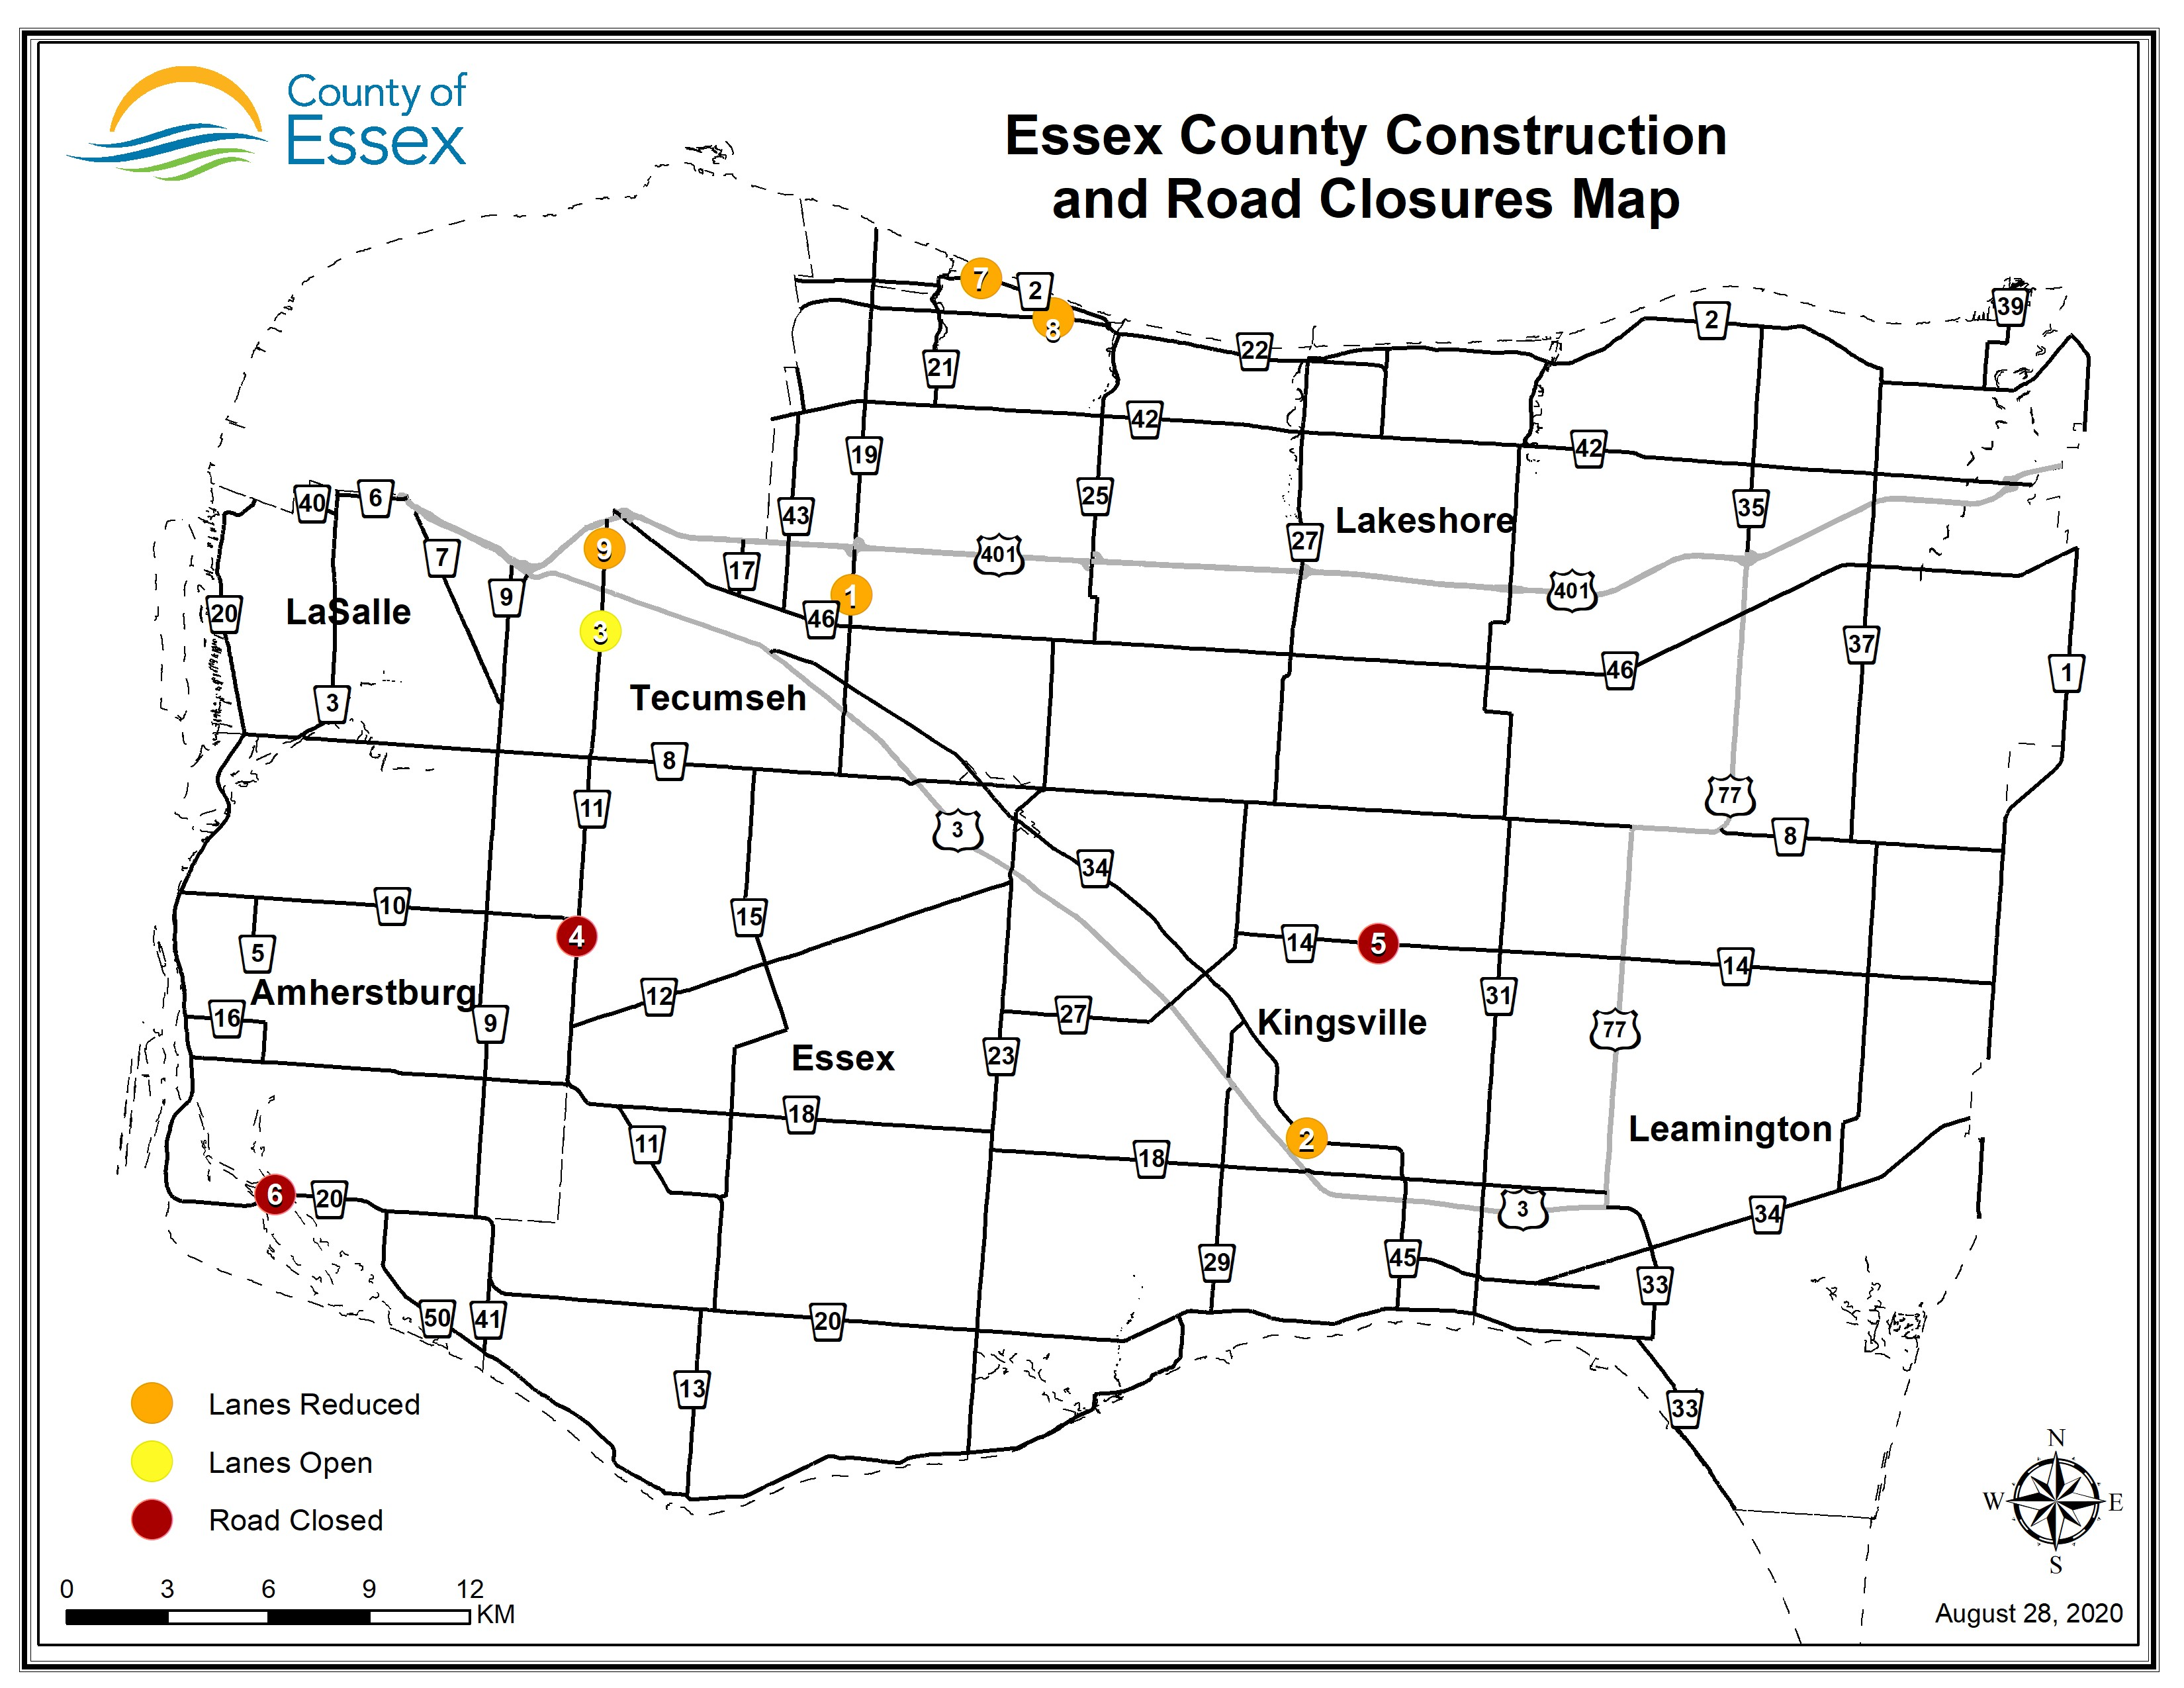 A map of Essex County showing lane restrictions and road closures for August 28, 2020.